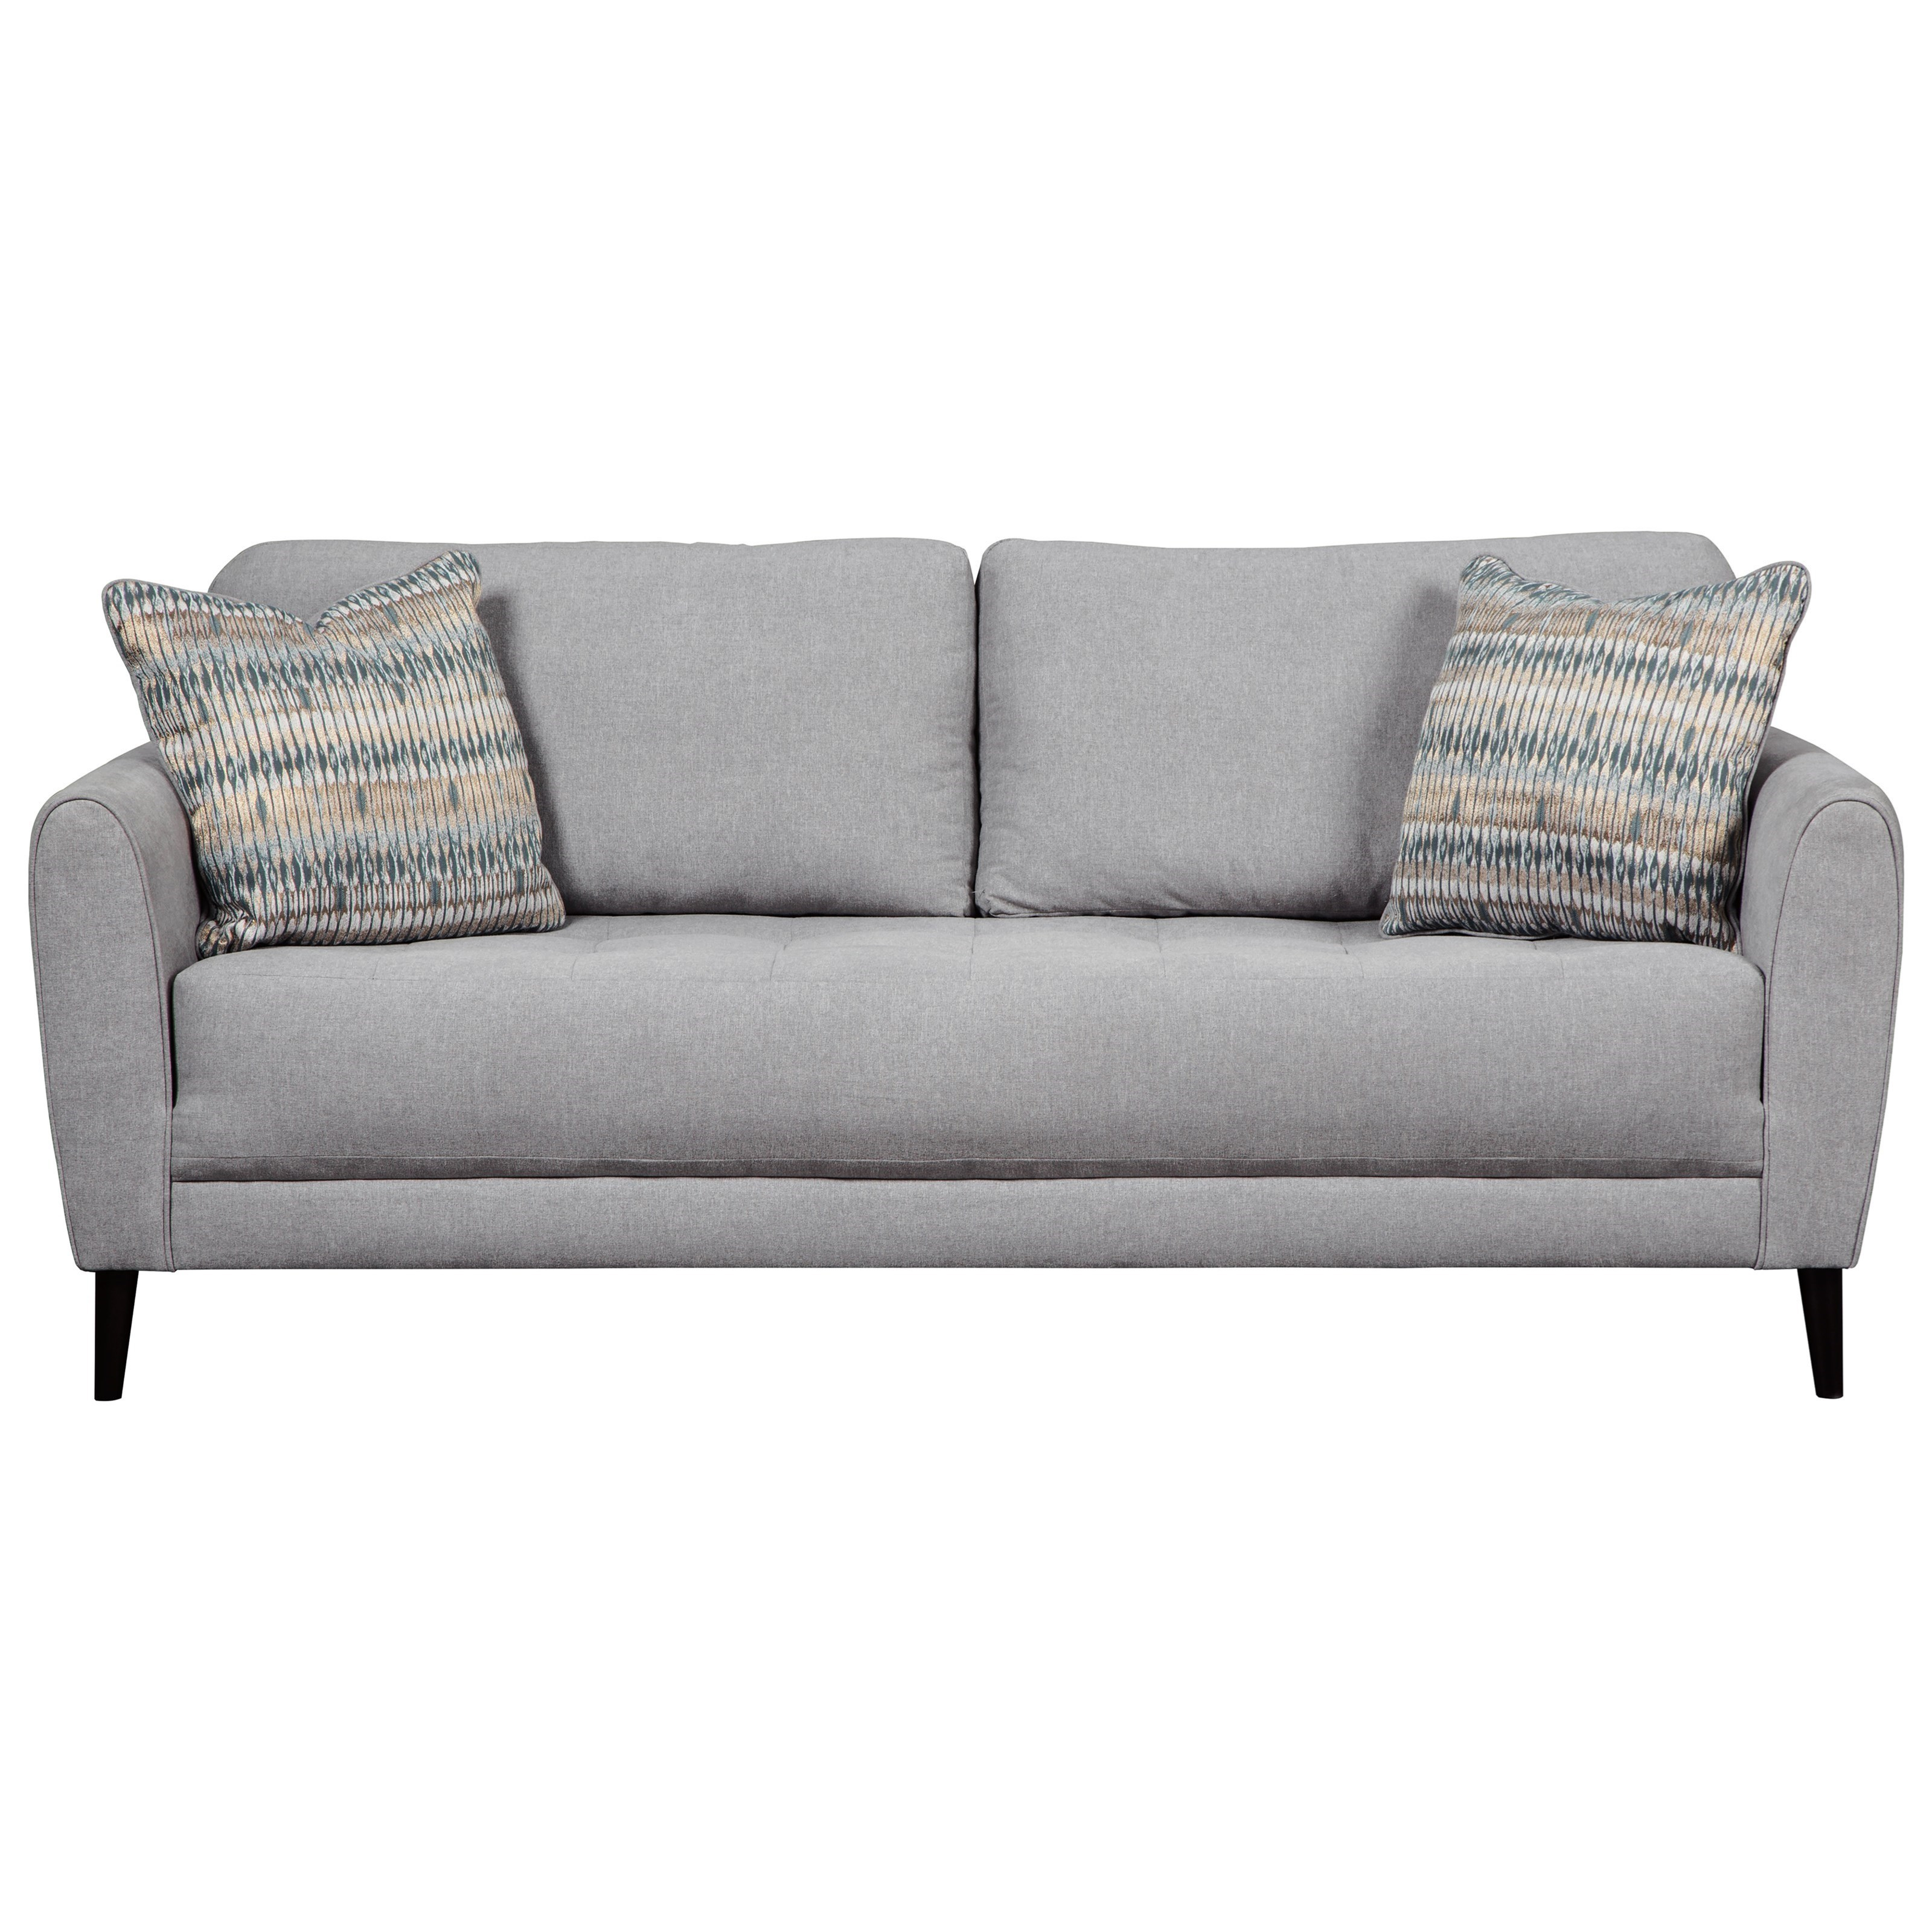 Sleeper Sofa Quick Delivery Cardello Contemporary Sofa By Signature Design By Ashley At Furniture And Appliancemart